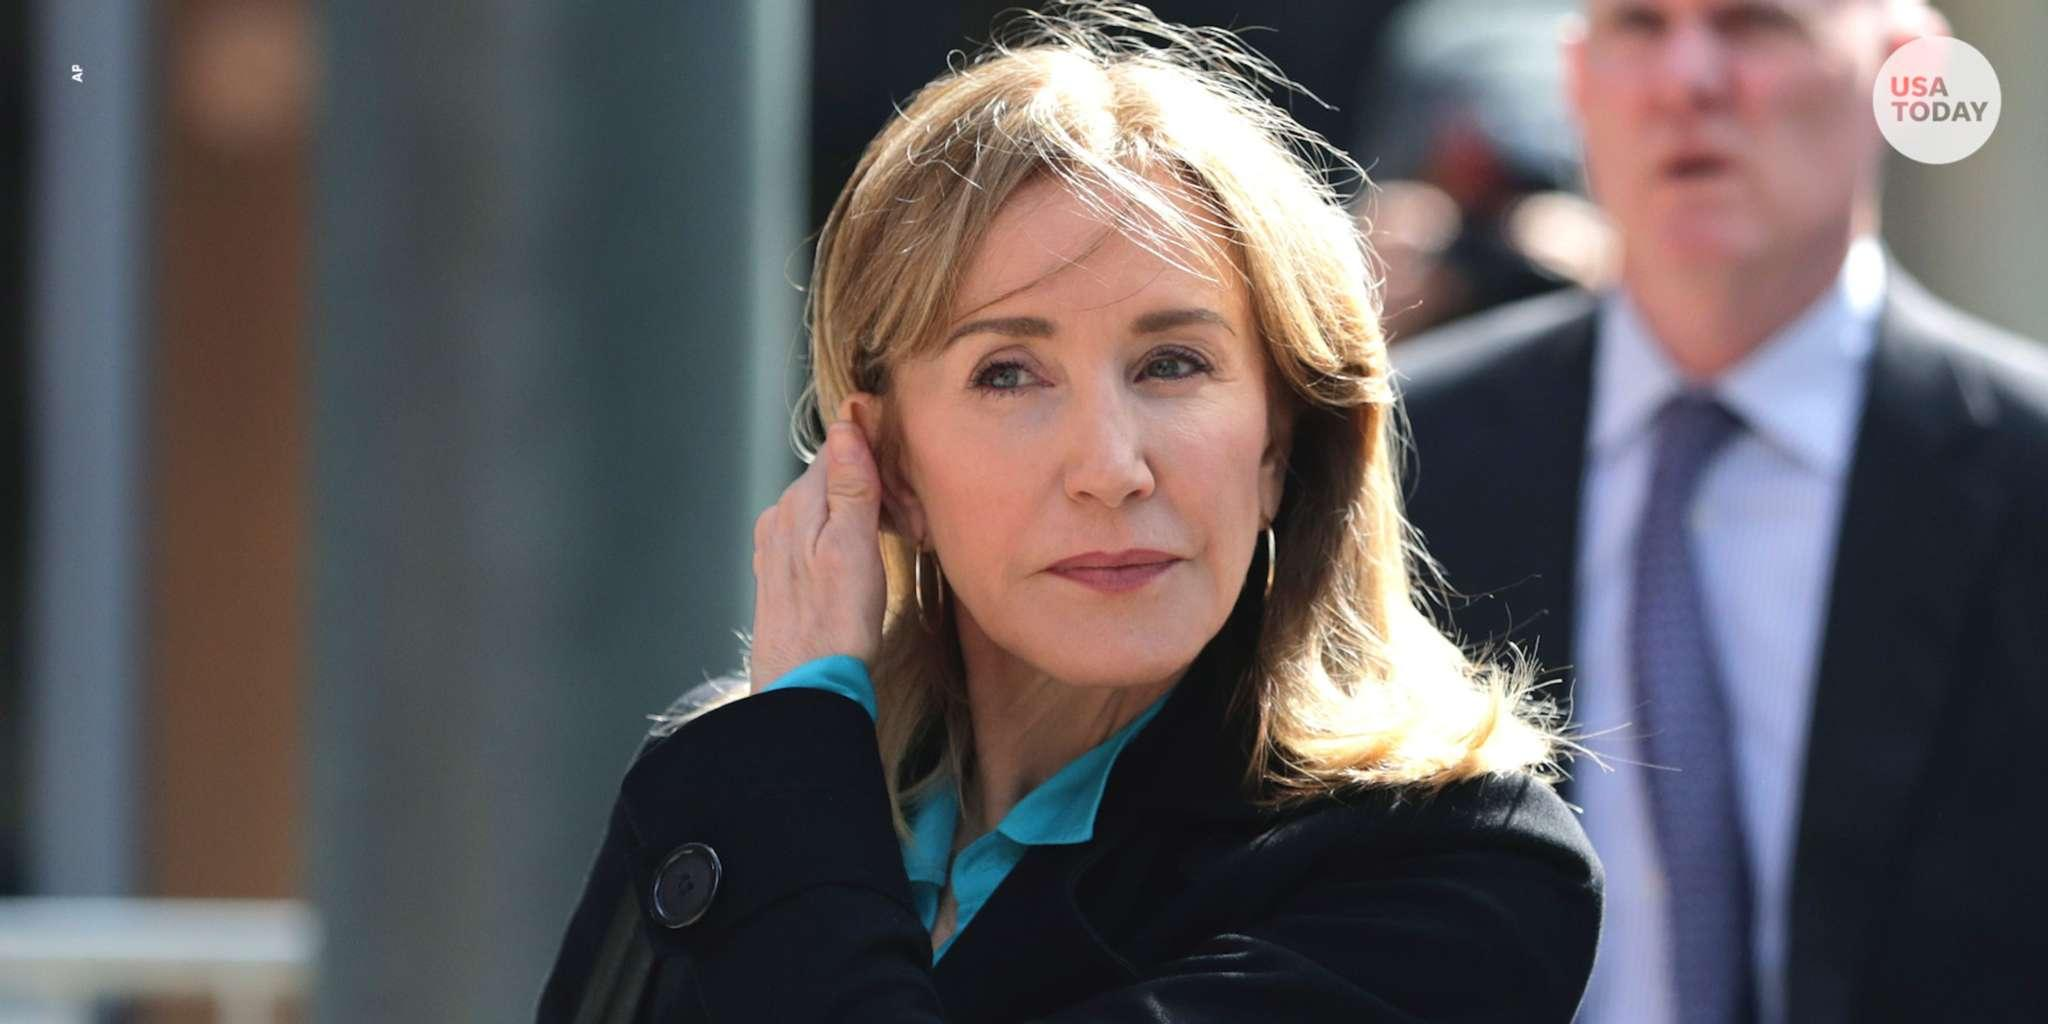 Felicity Huffman Most Likely Won't Serve Time In Prison Regardless Of Her Sentence, Lawyer Says - Here's Why!